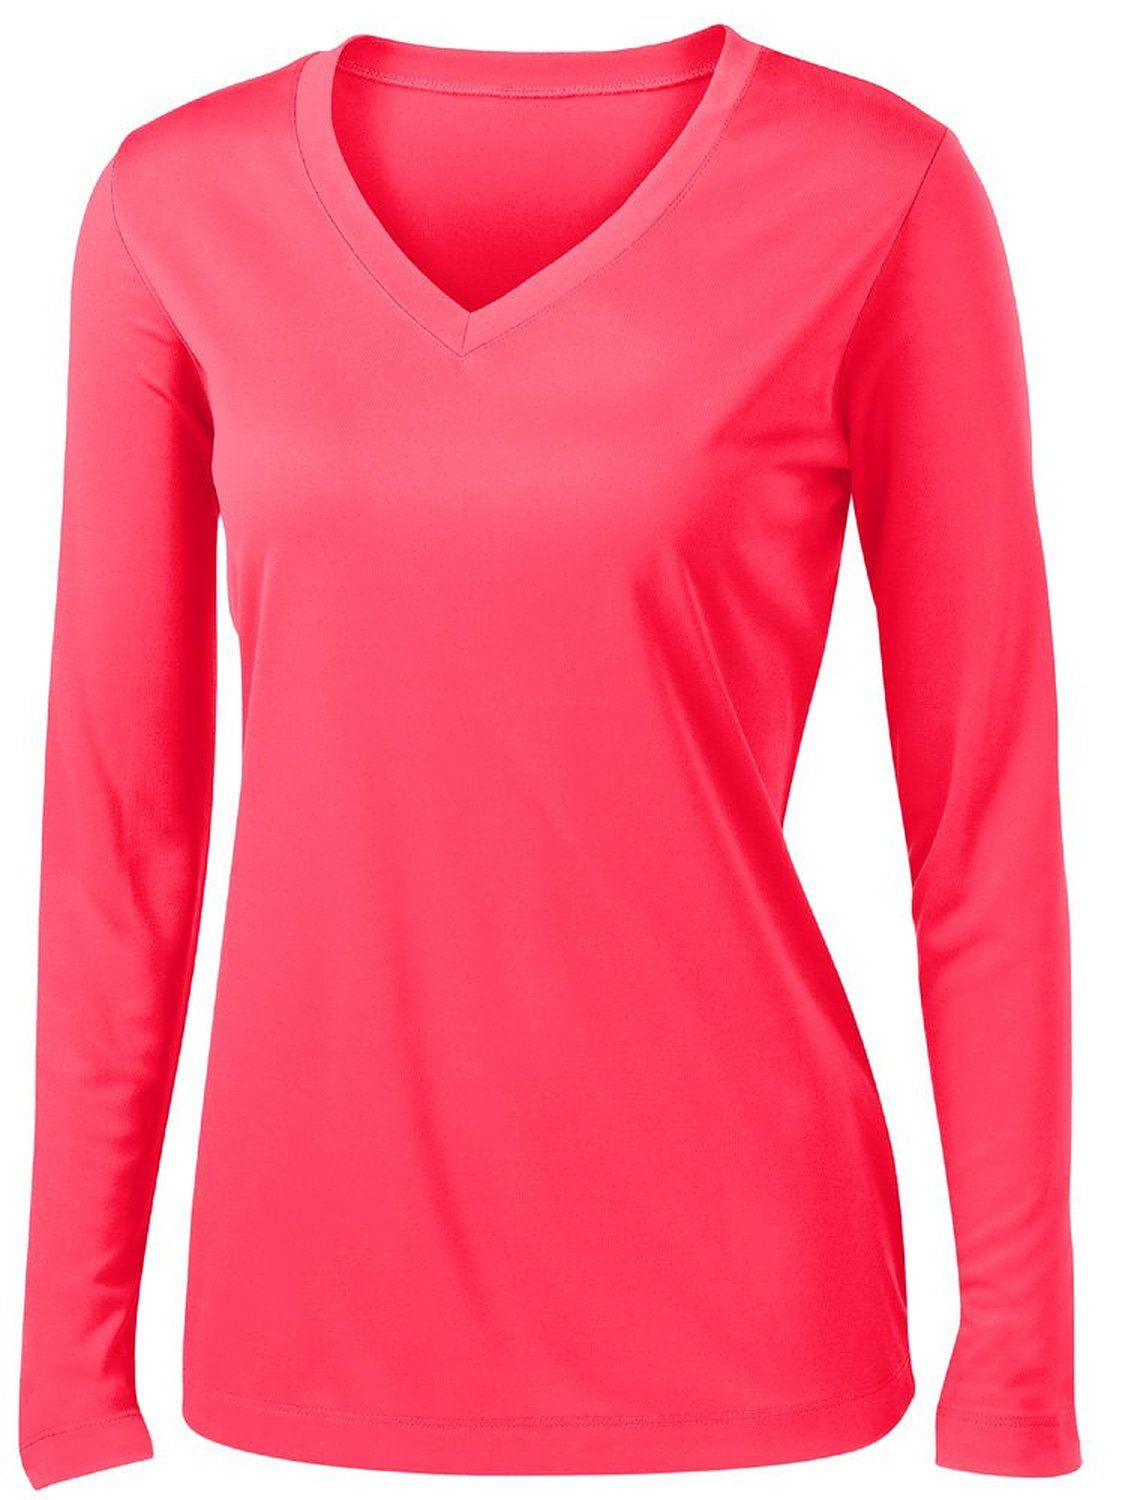 4eb0623aff15f Ladies Long Sleeve Moisture Wicking Athletic Shirts Sizes XS-4XL at ...